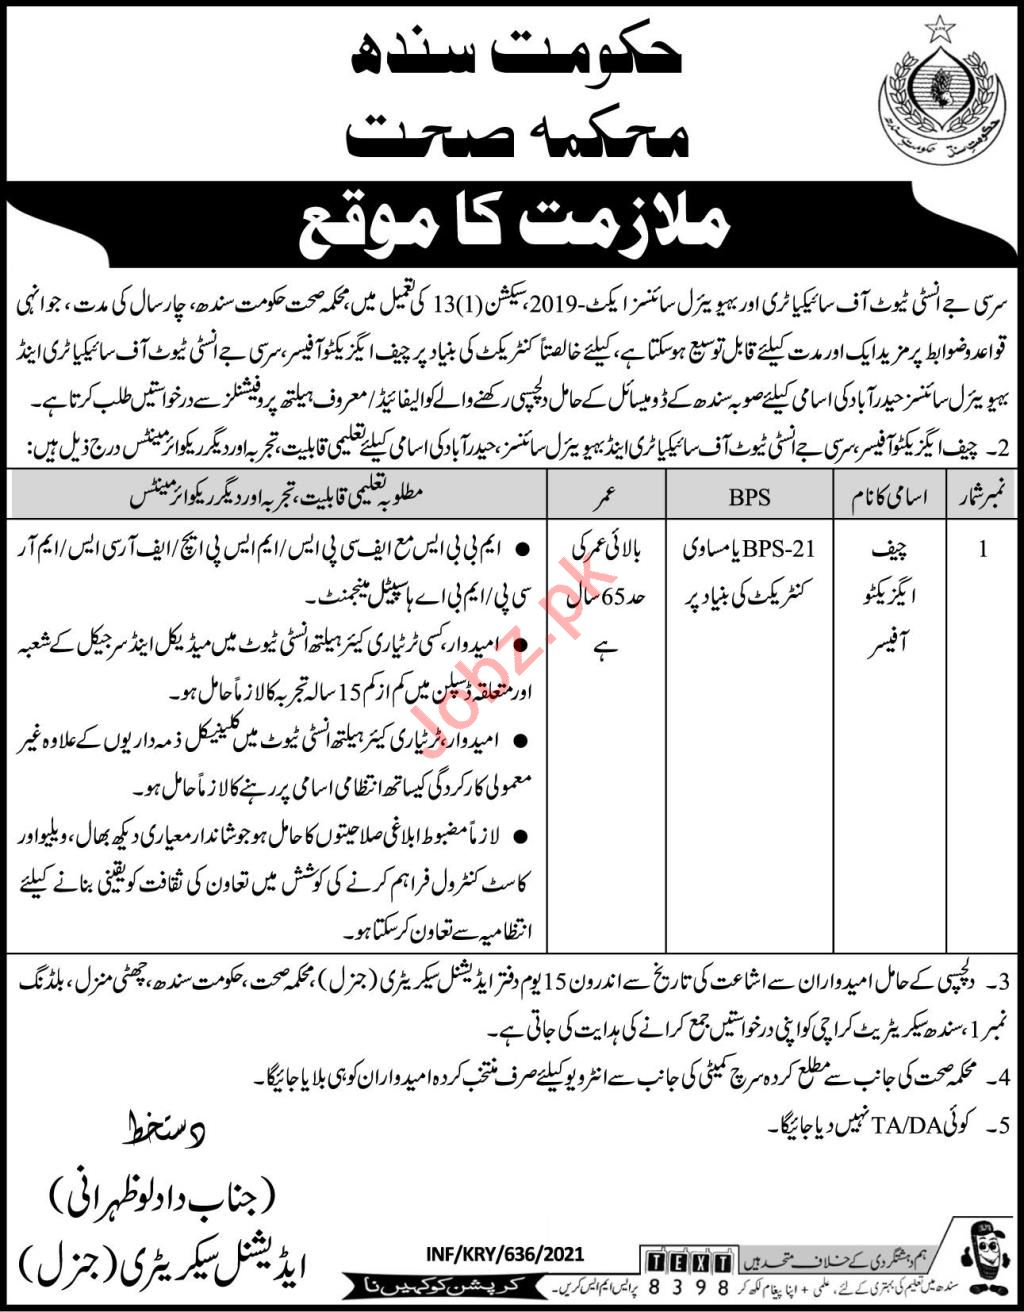 Sir CJ Institute of psychiatry Hyderabad Jobs 2021 for CEO